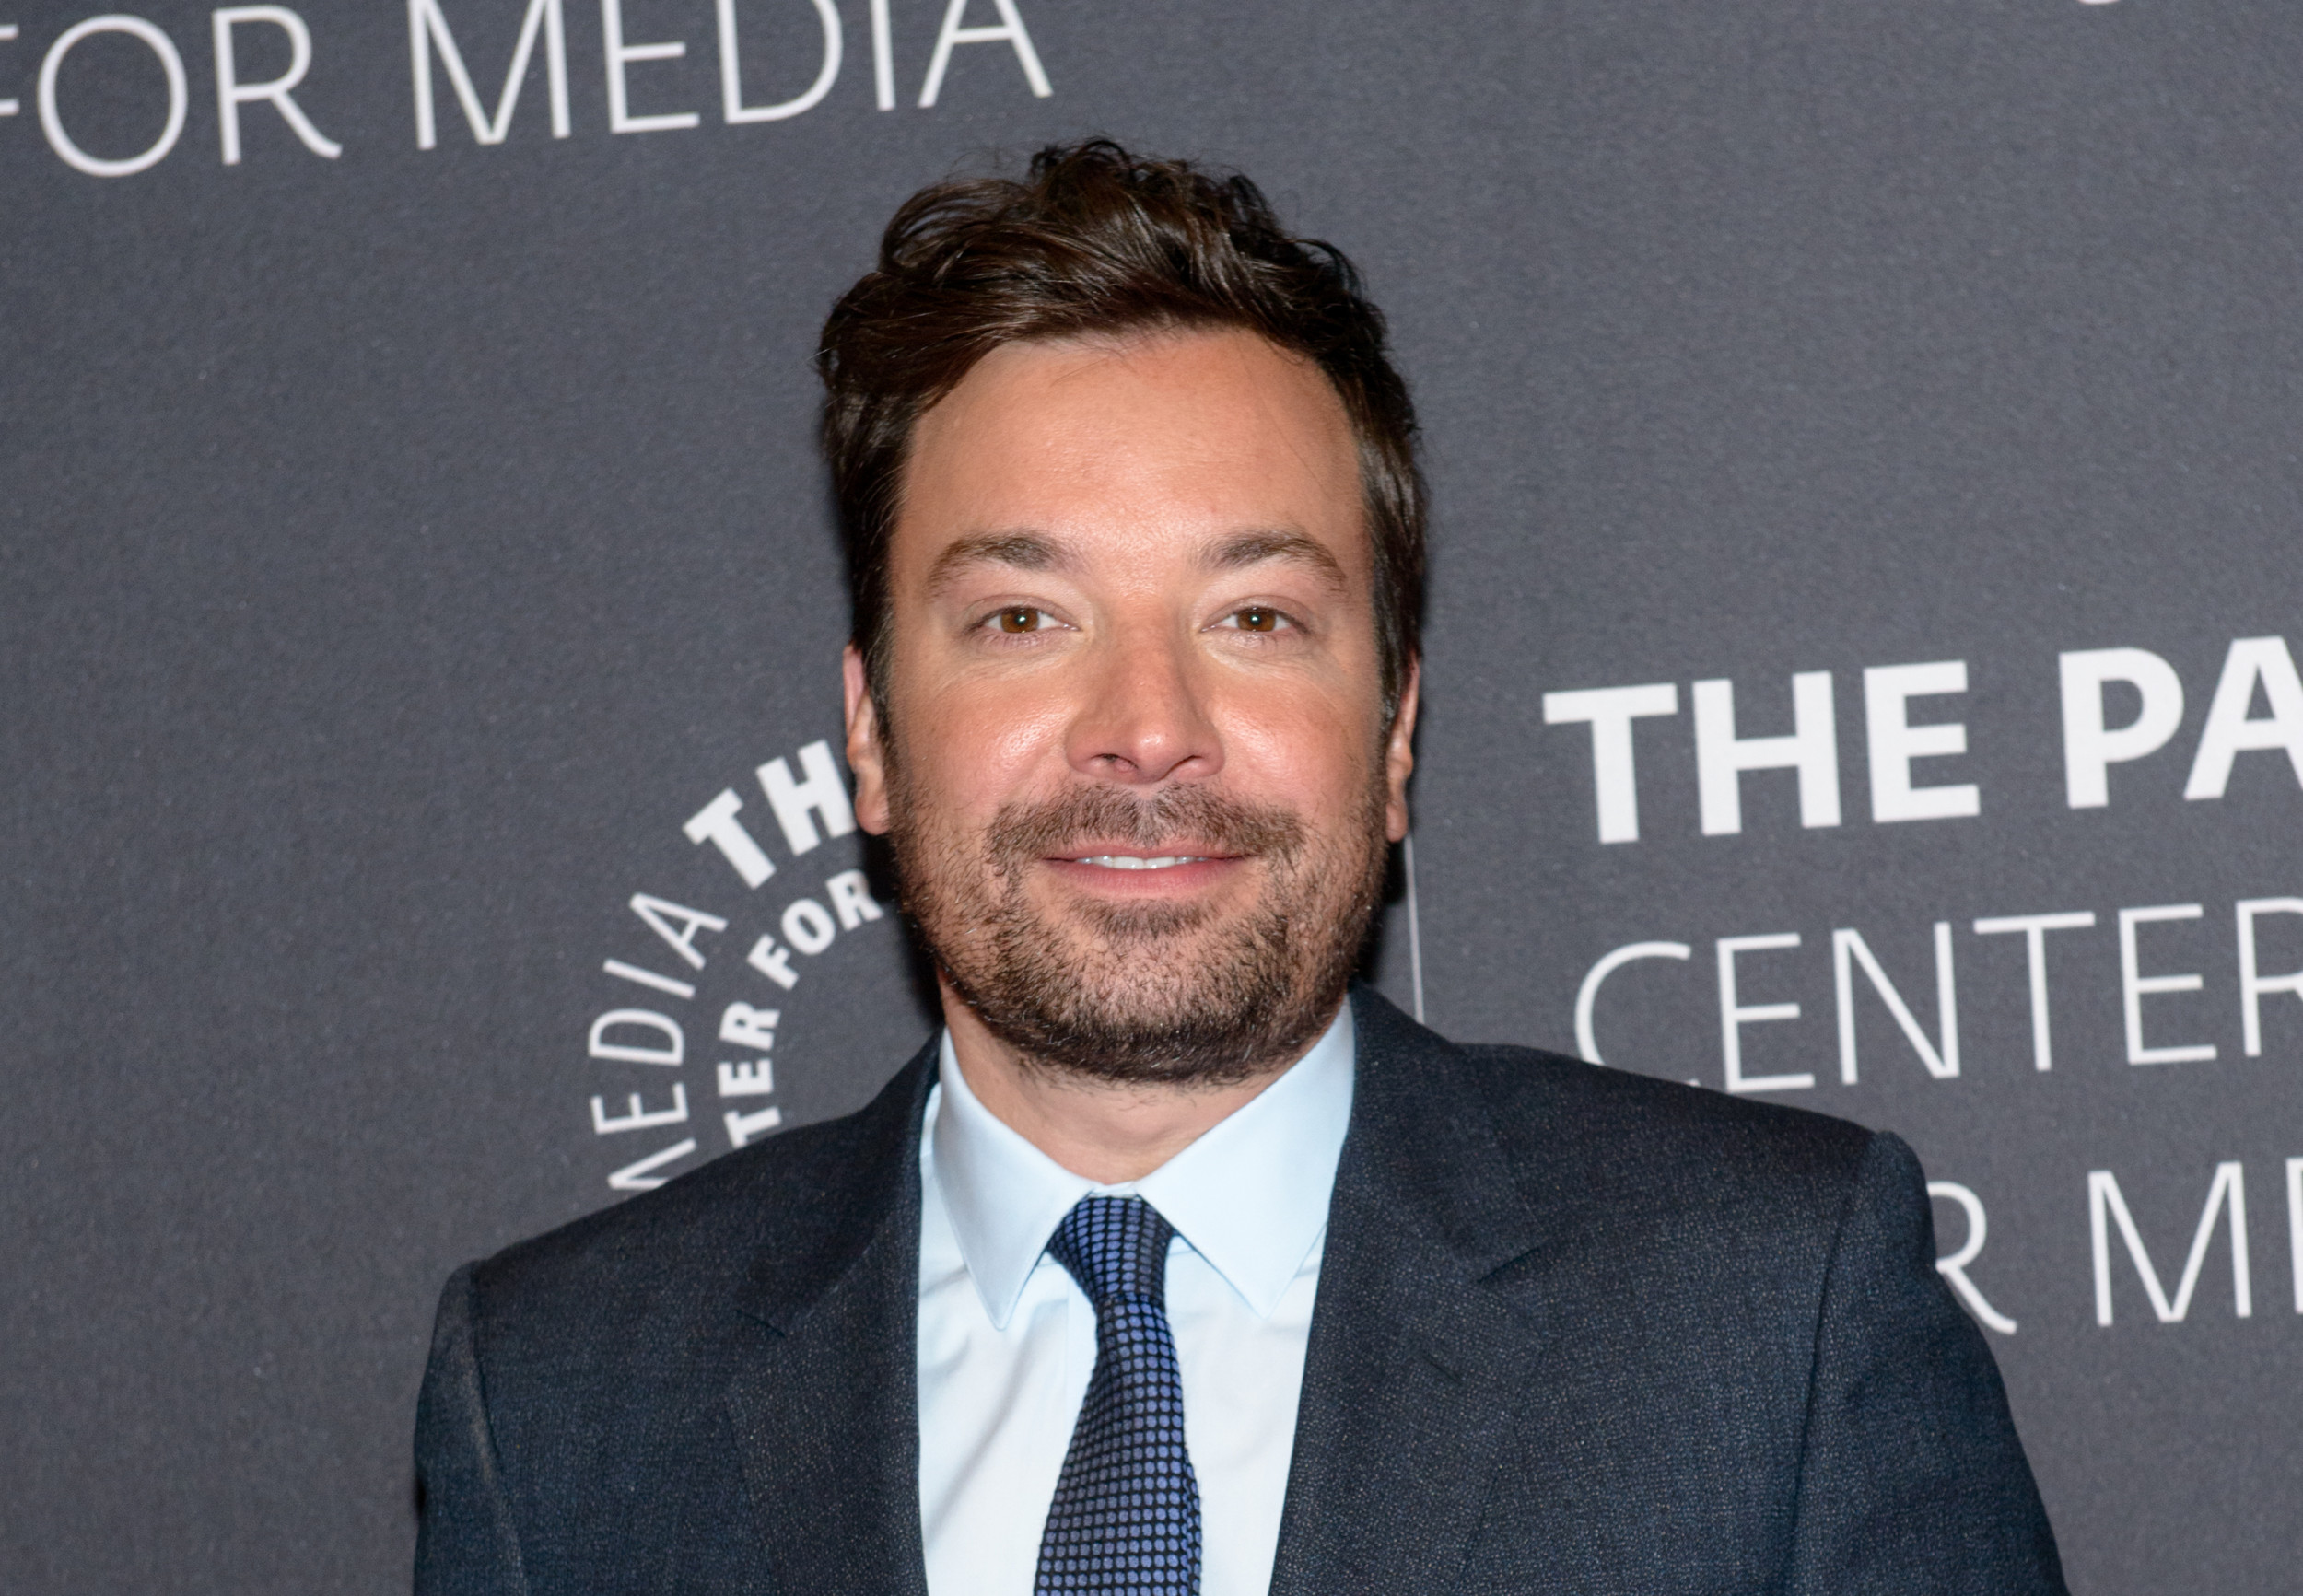 Jimmy Fallon Mocks Sidney Powell's Firing From Trump's Appropriate Team For 'Being Too Crazy'